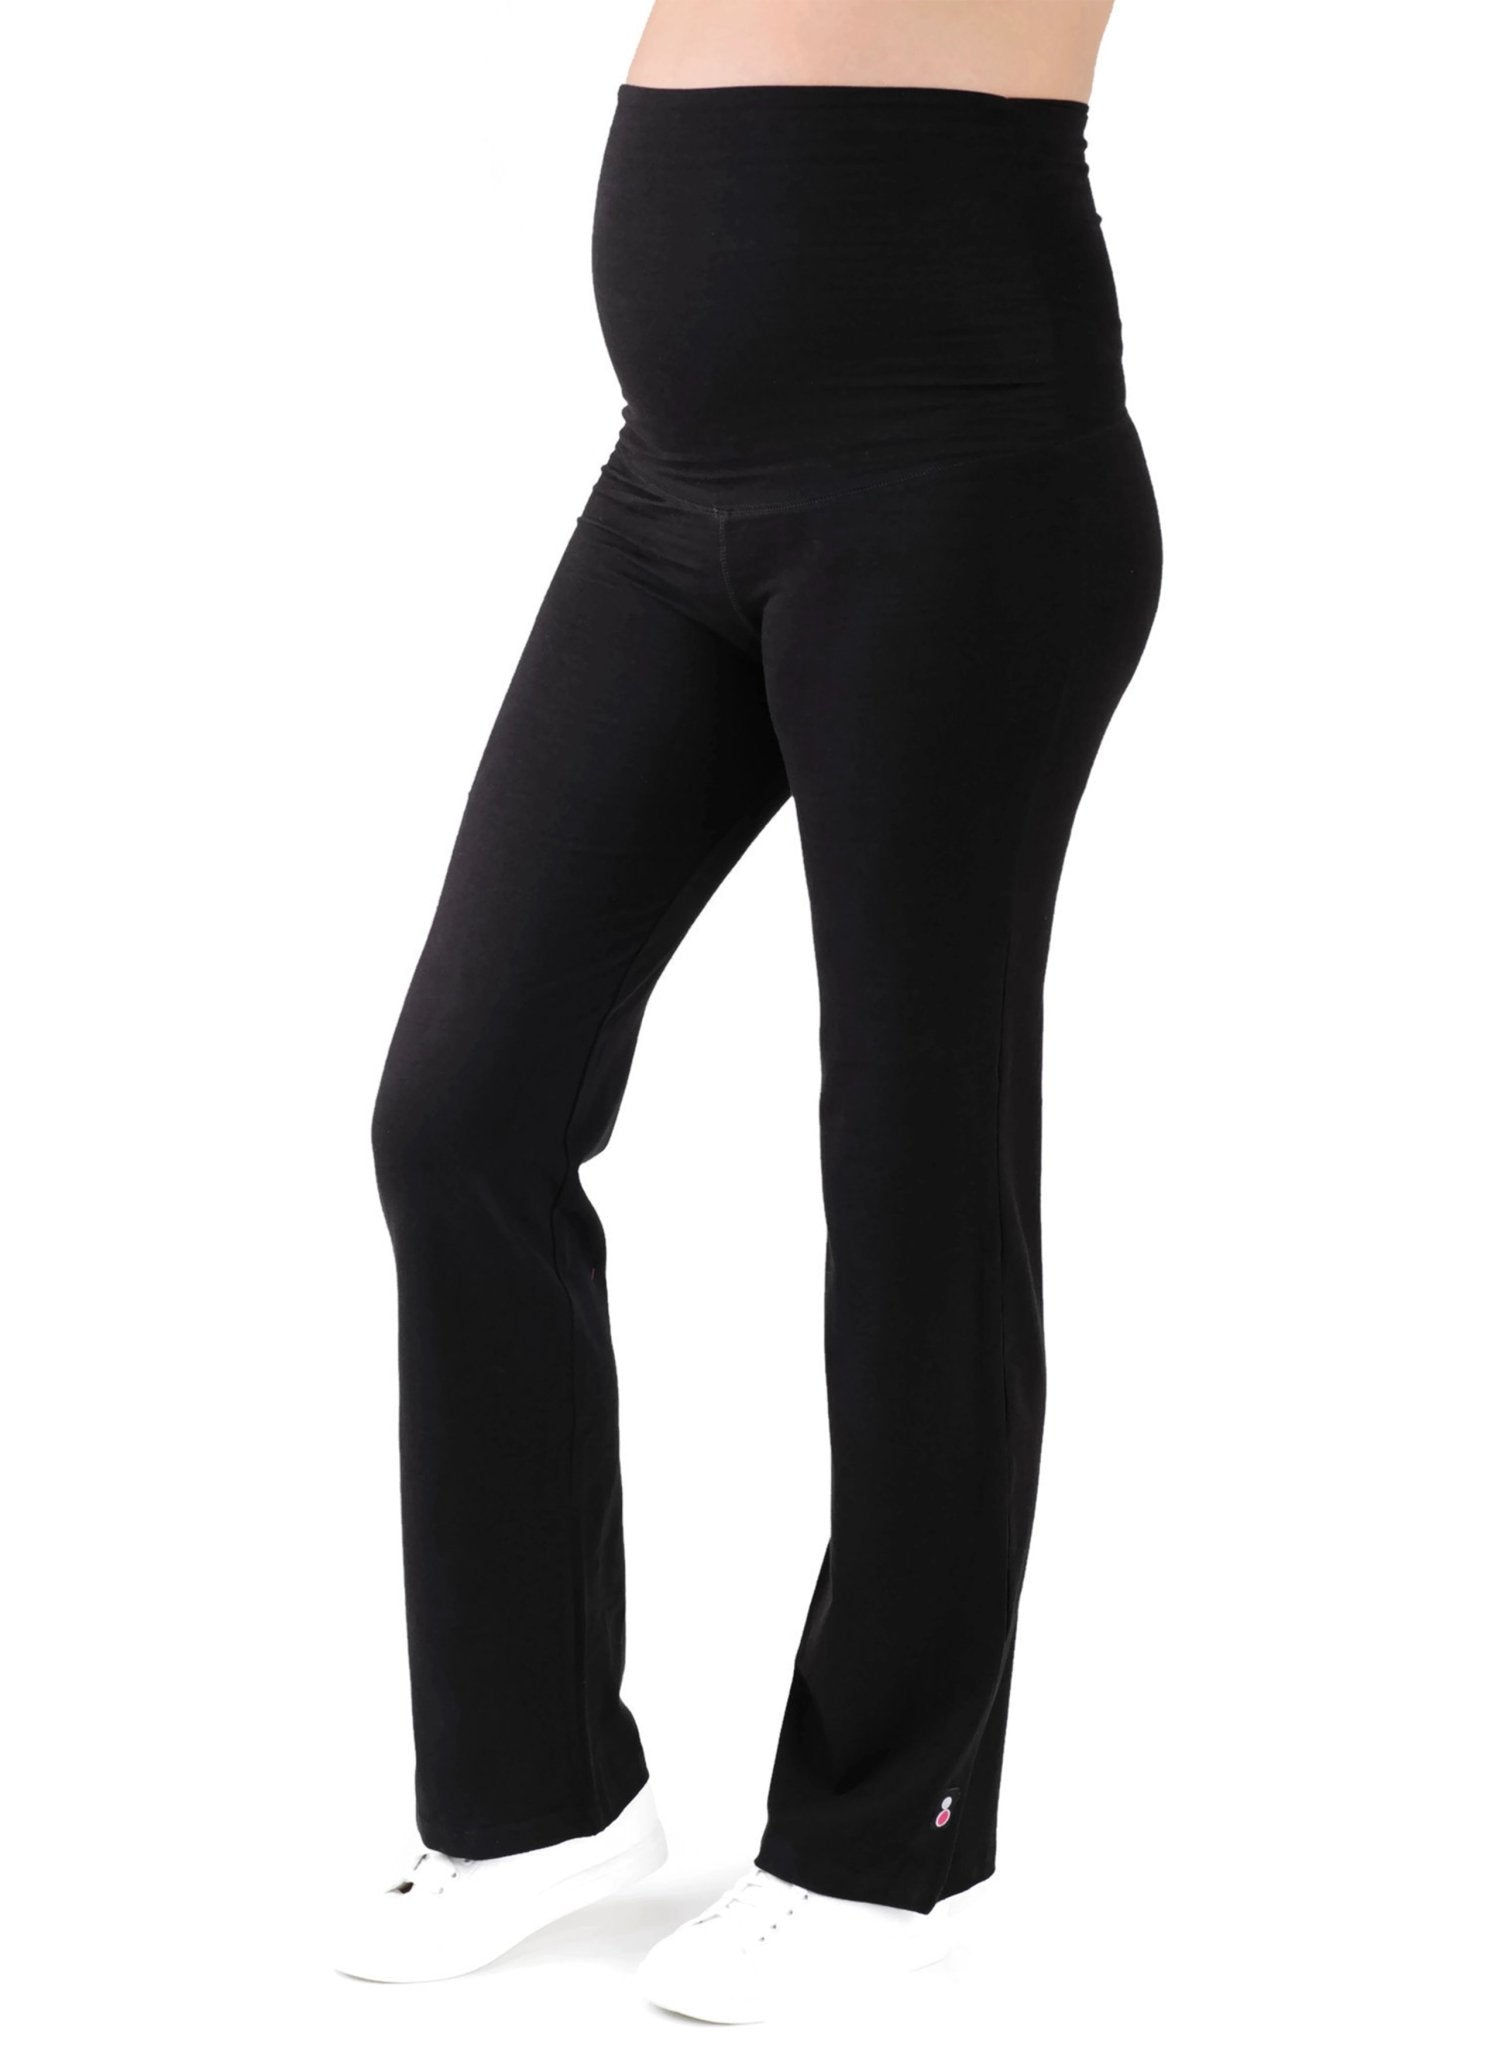 Supportive Exercise Maternity Pants - Mums and Bumps